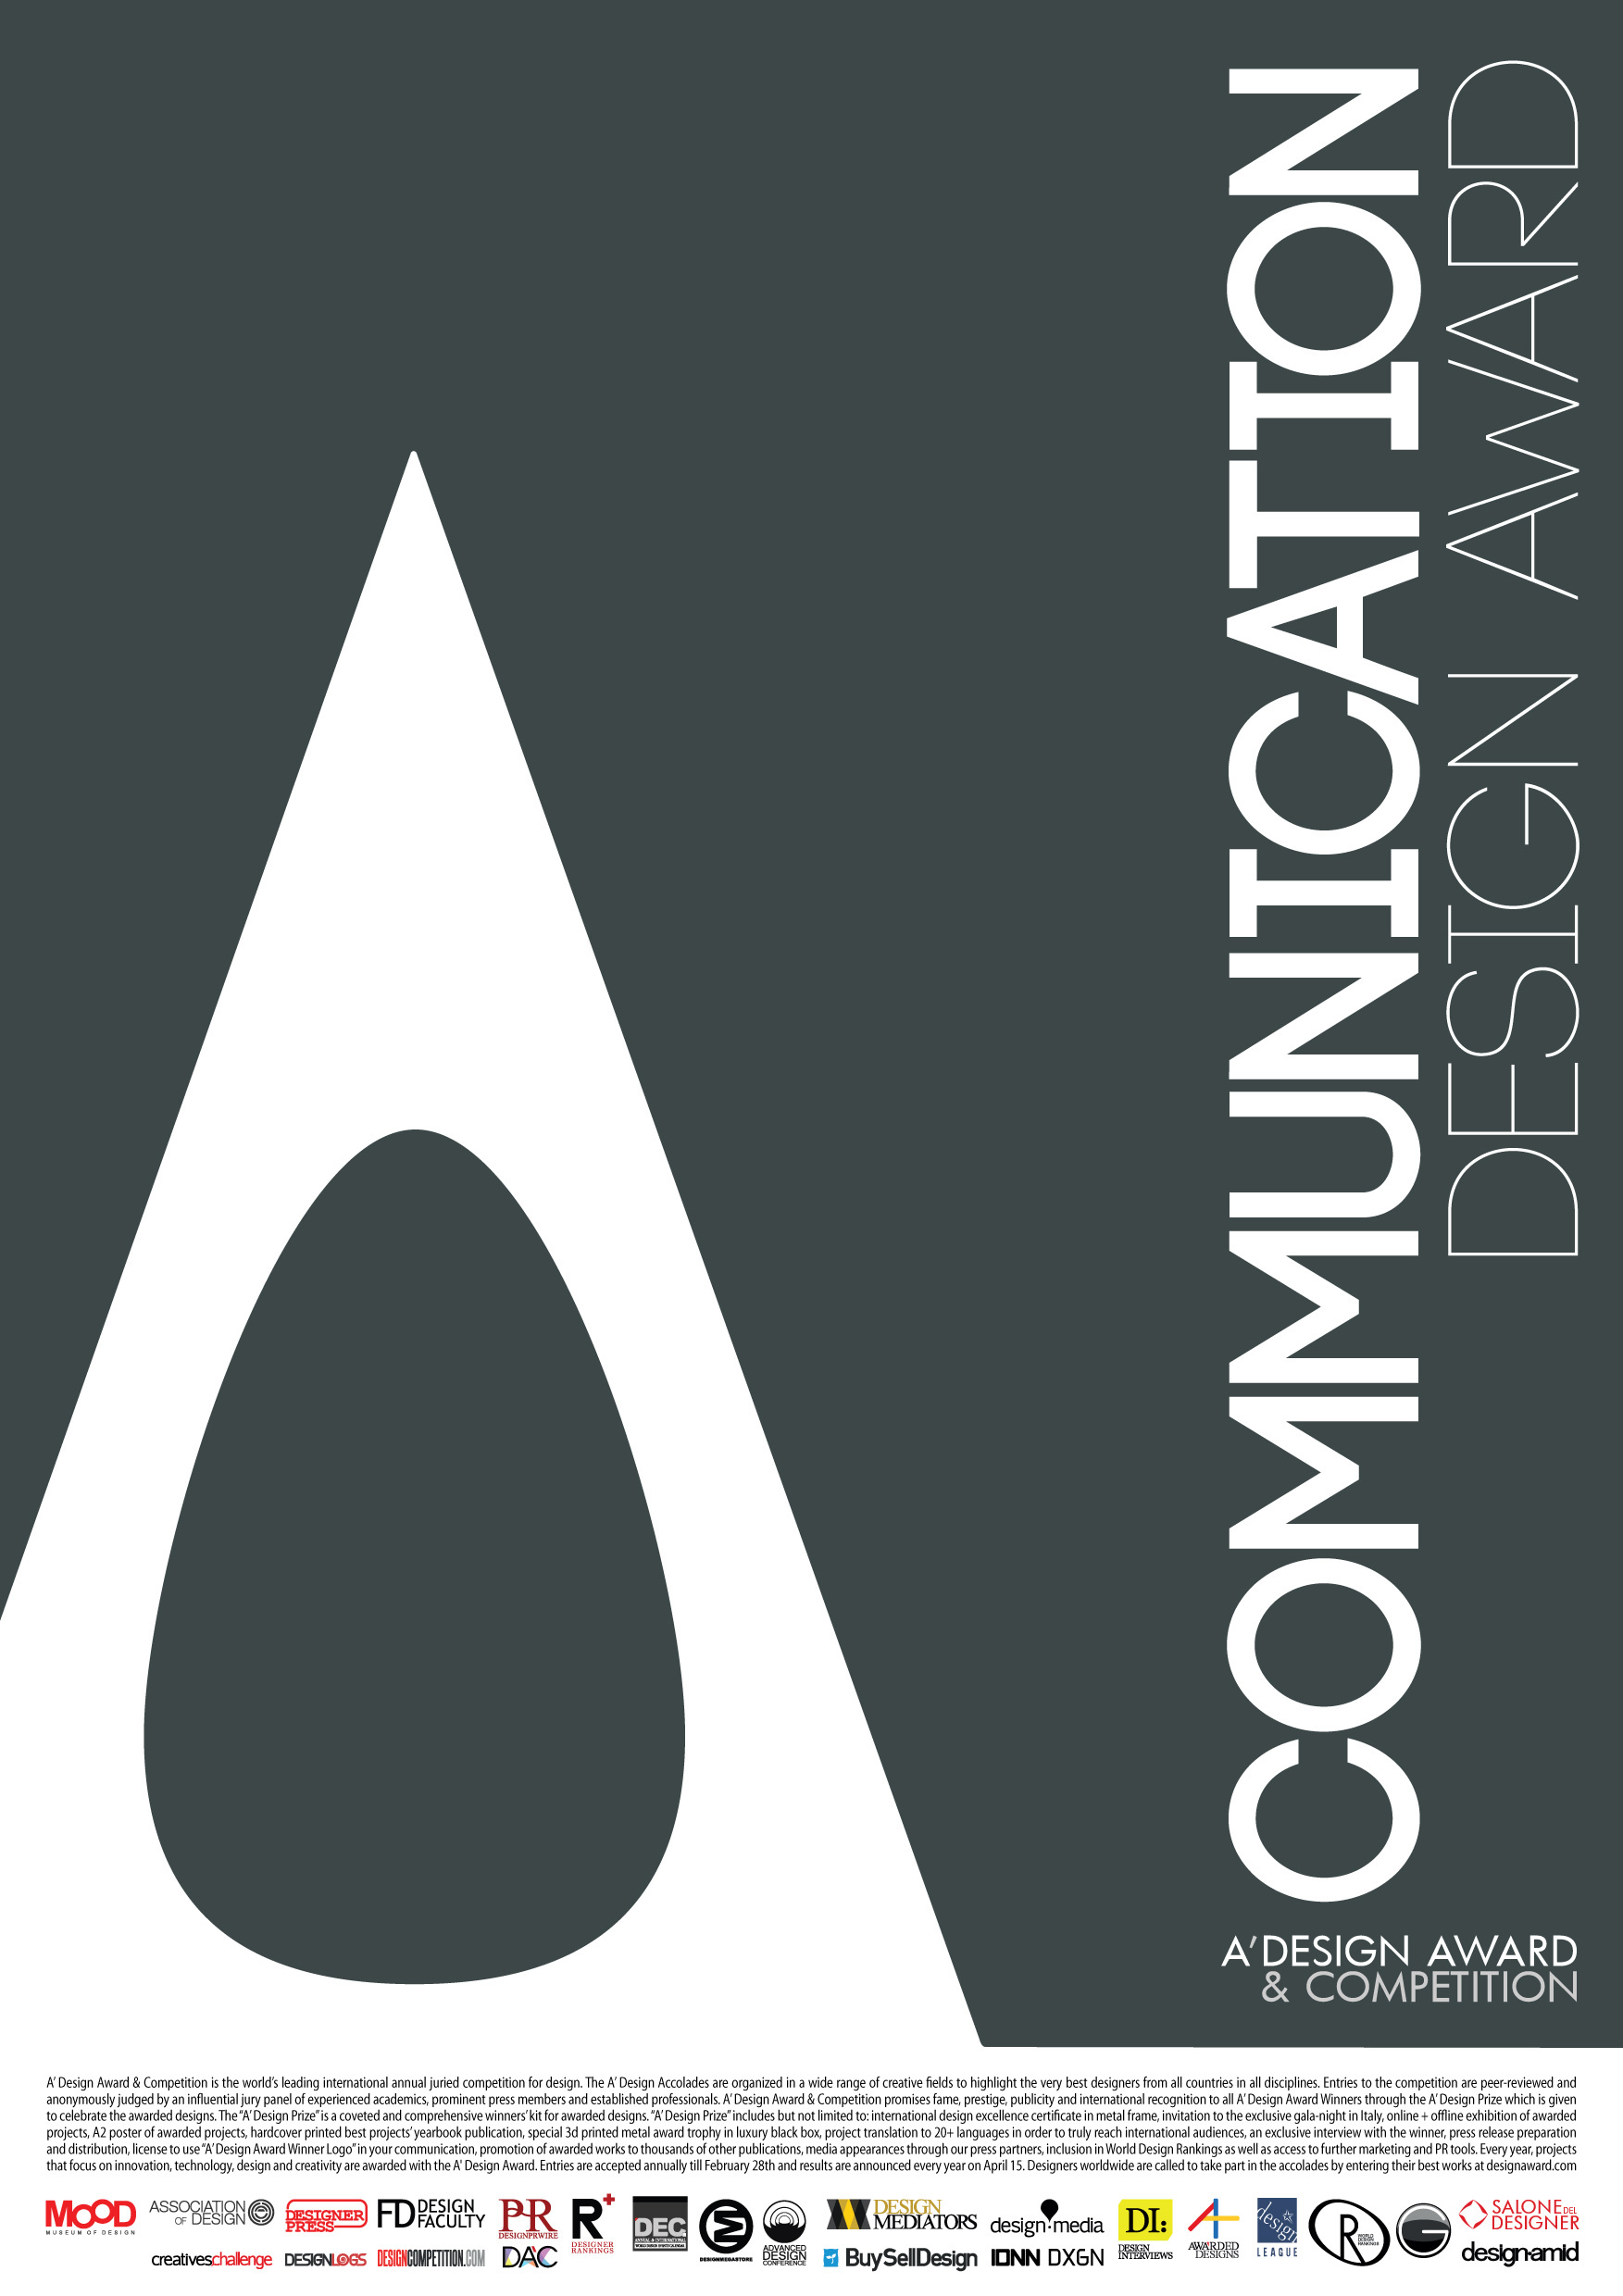 A Design Award And Competition Good Communication Design